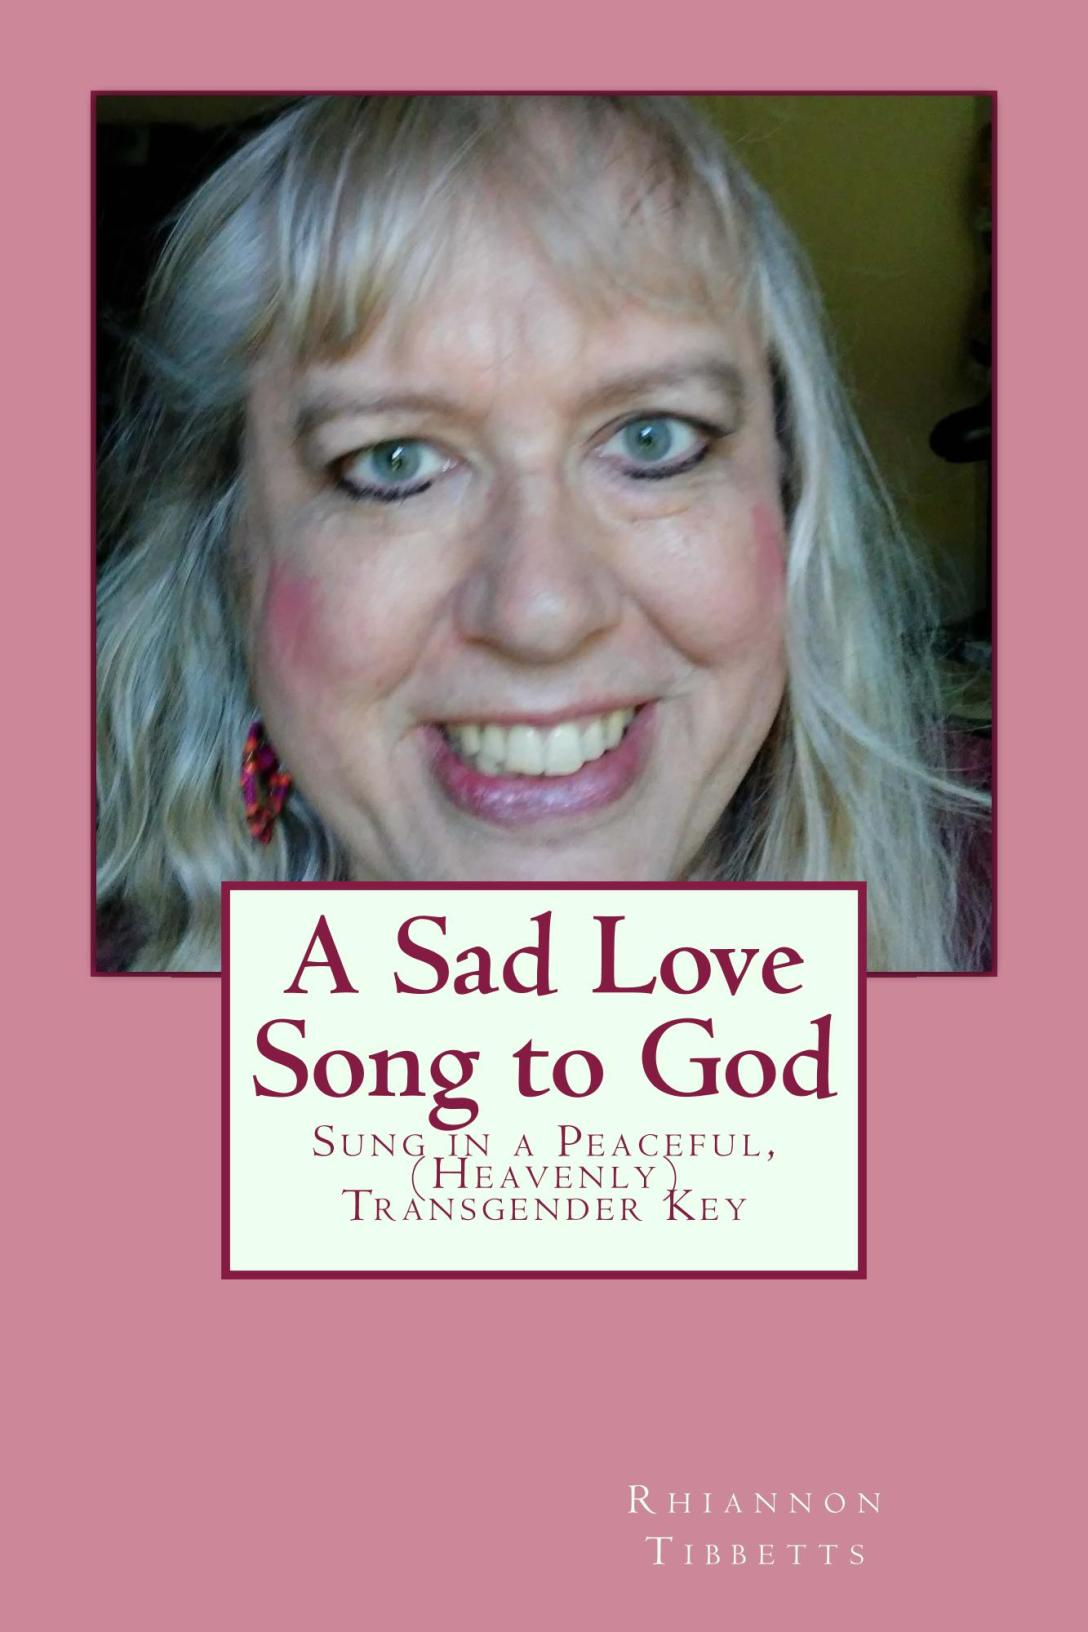 a_sad_love_song_to_g_cover_for_kindle